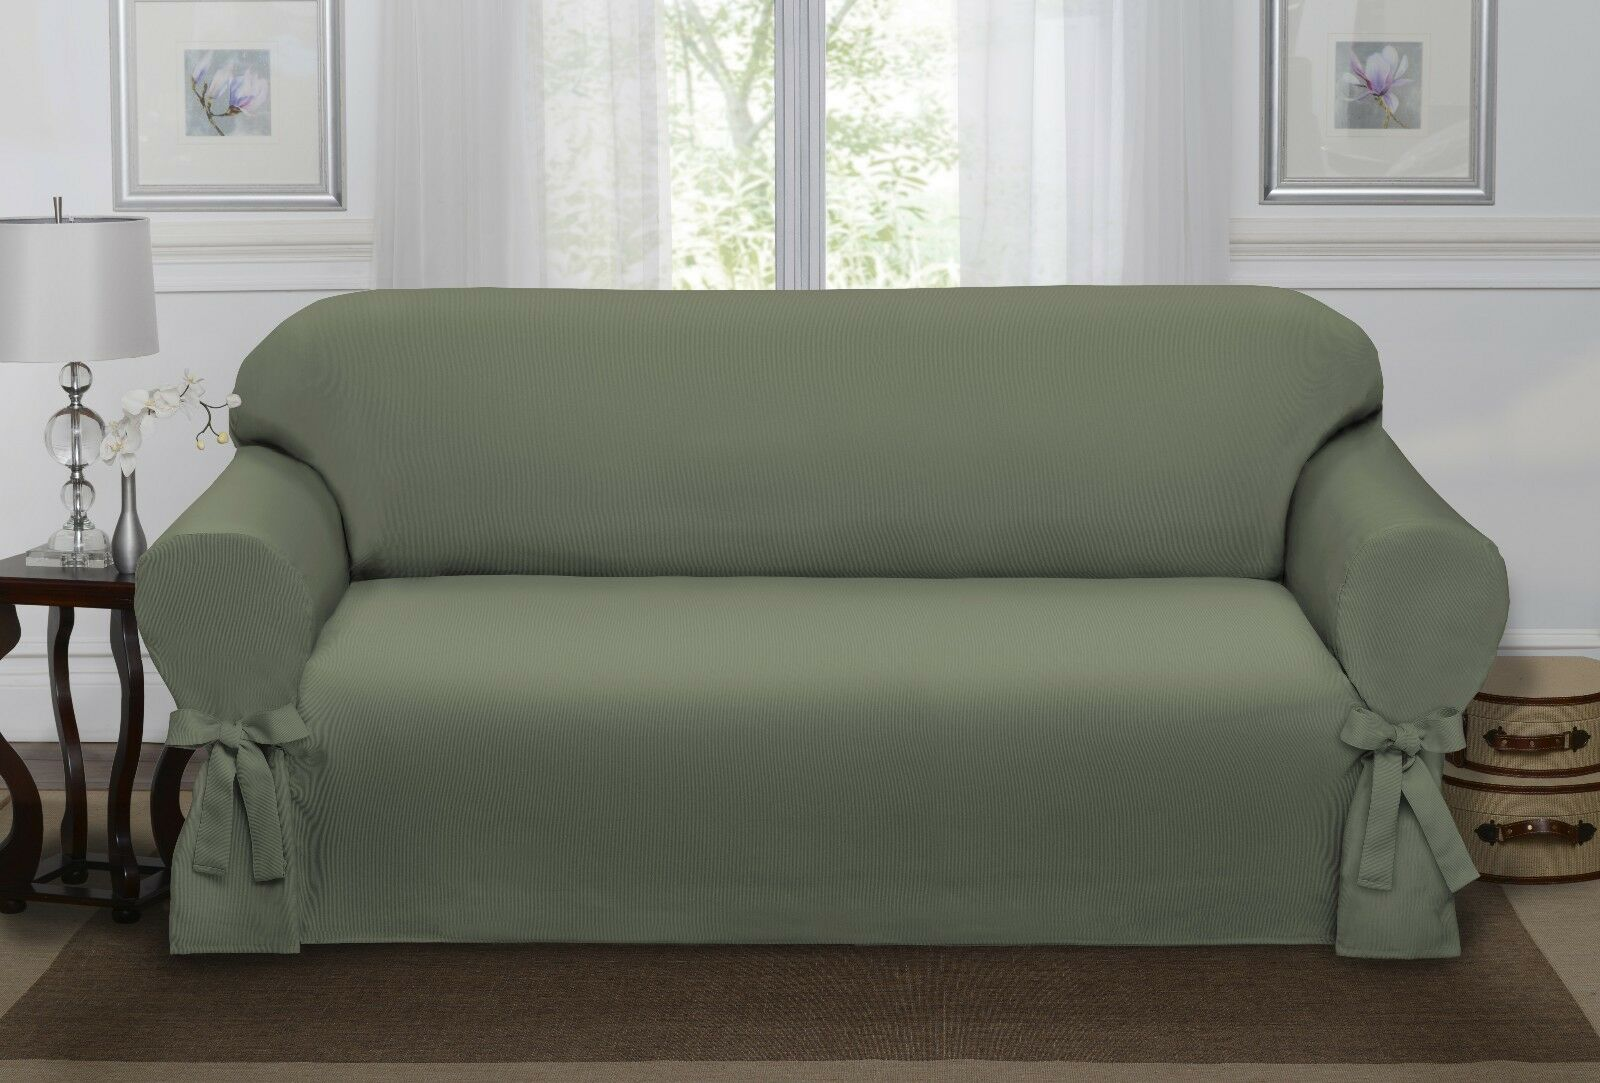 Sage green loden lucerne sofa slipcover couch cover sofa chair 4 colors ebay Couch and loveseat covers